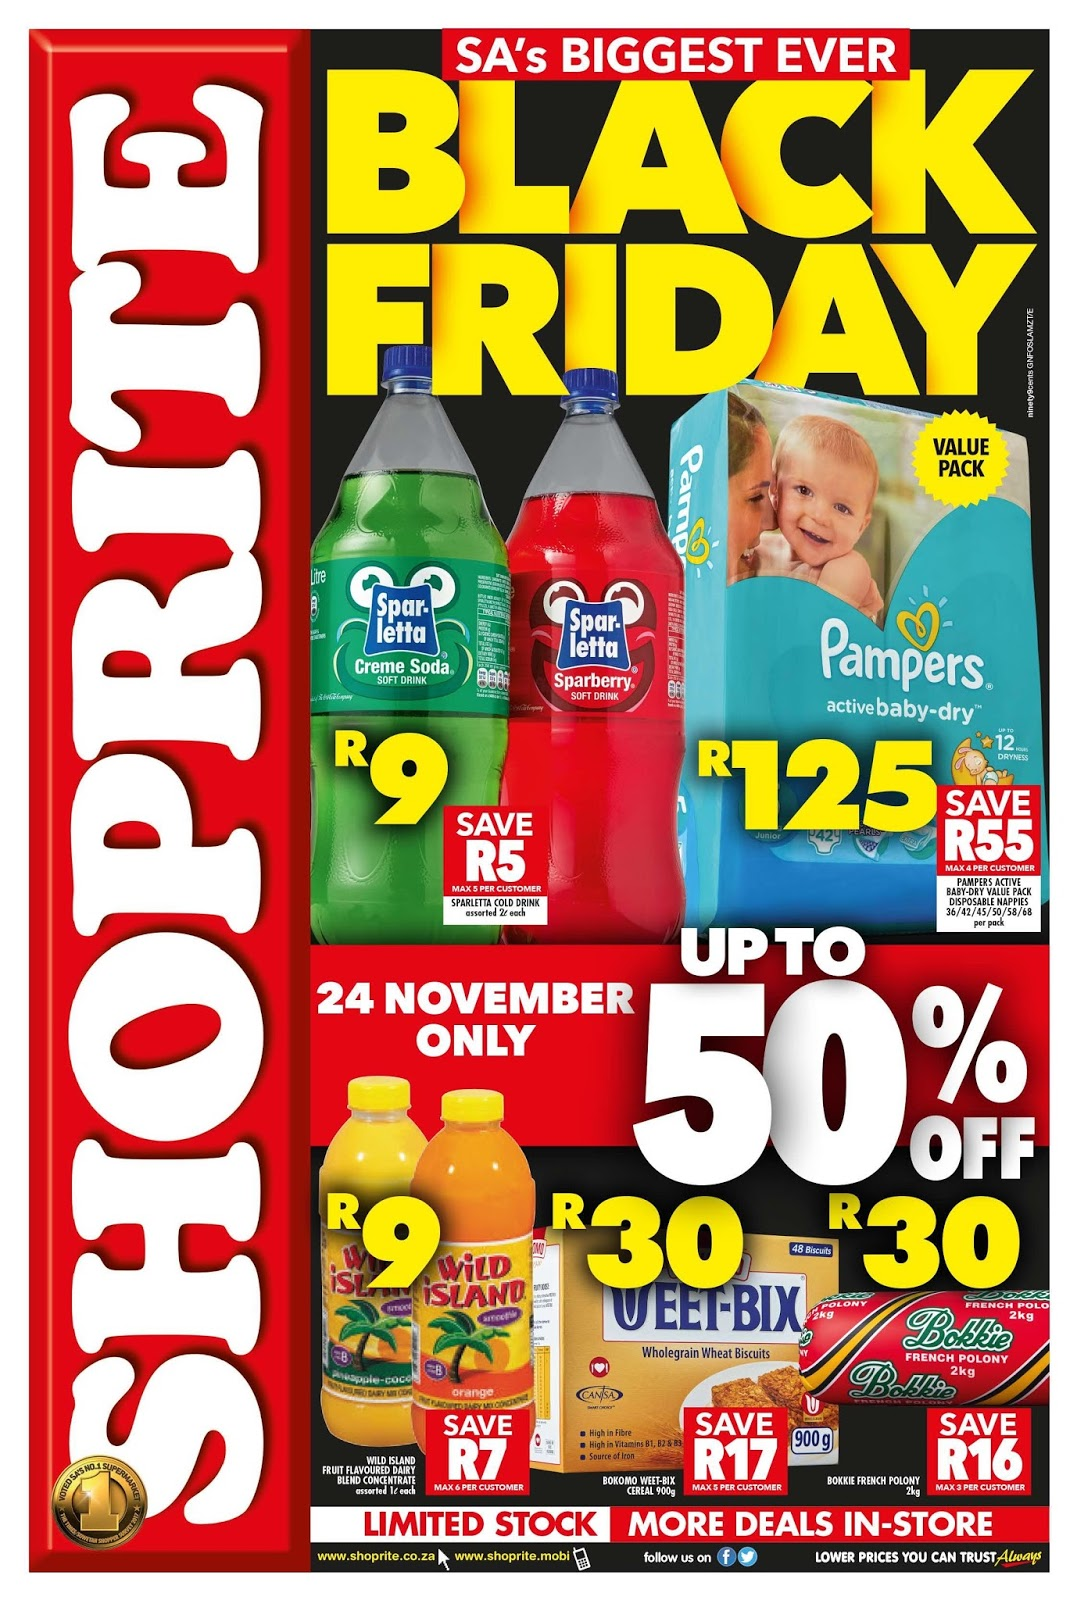 Shoprite's biggest savings promotion of the year, Black Friday, is back  again! This Friday, 24 November 2017 customers can expect incredible  savings of up ...